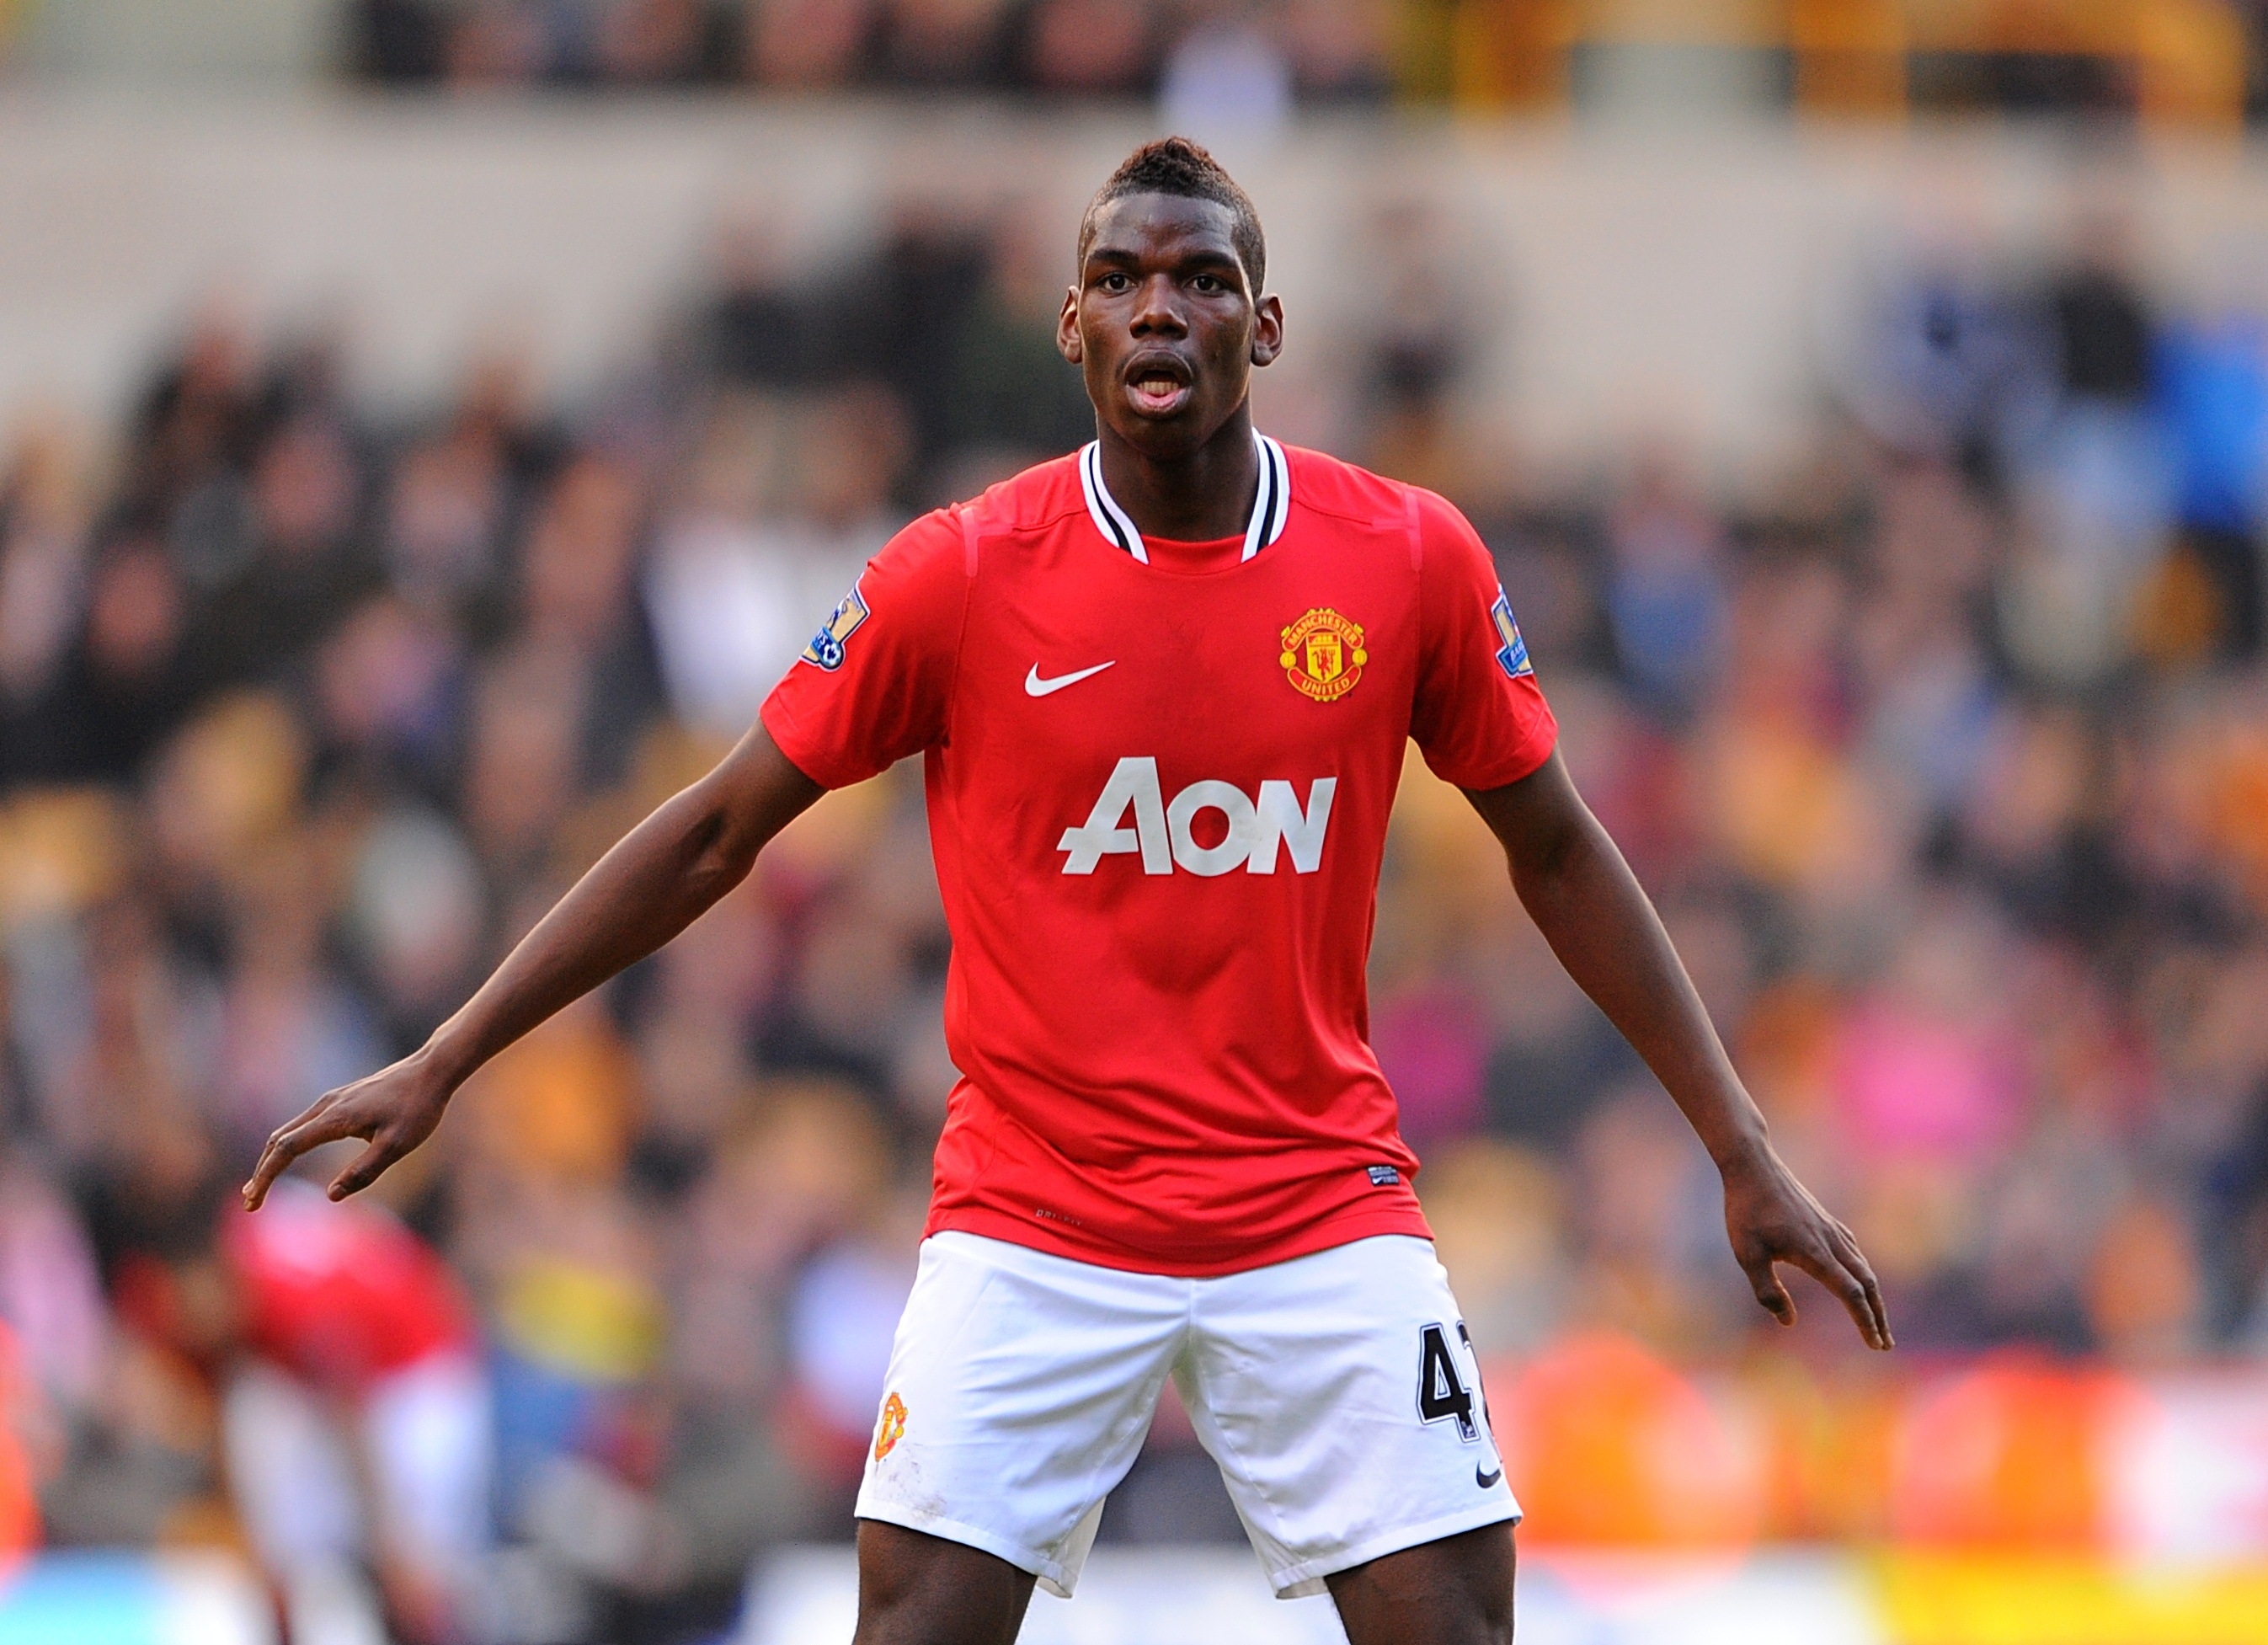 Manchester United Tar Paul Pogba Speaks About Transfer Rumours